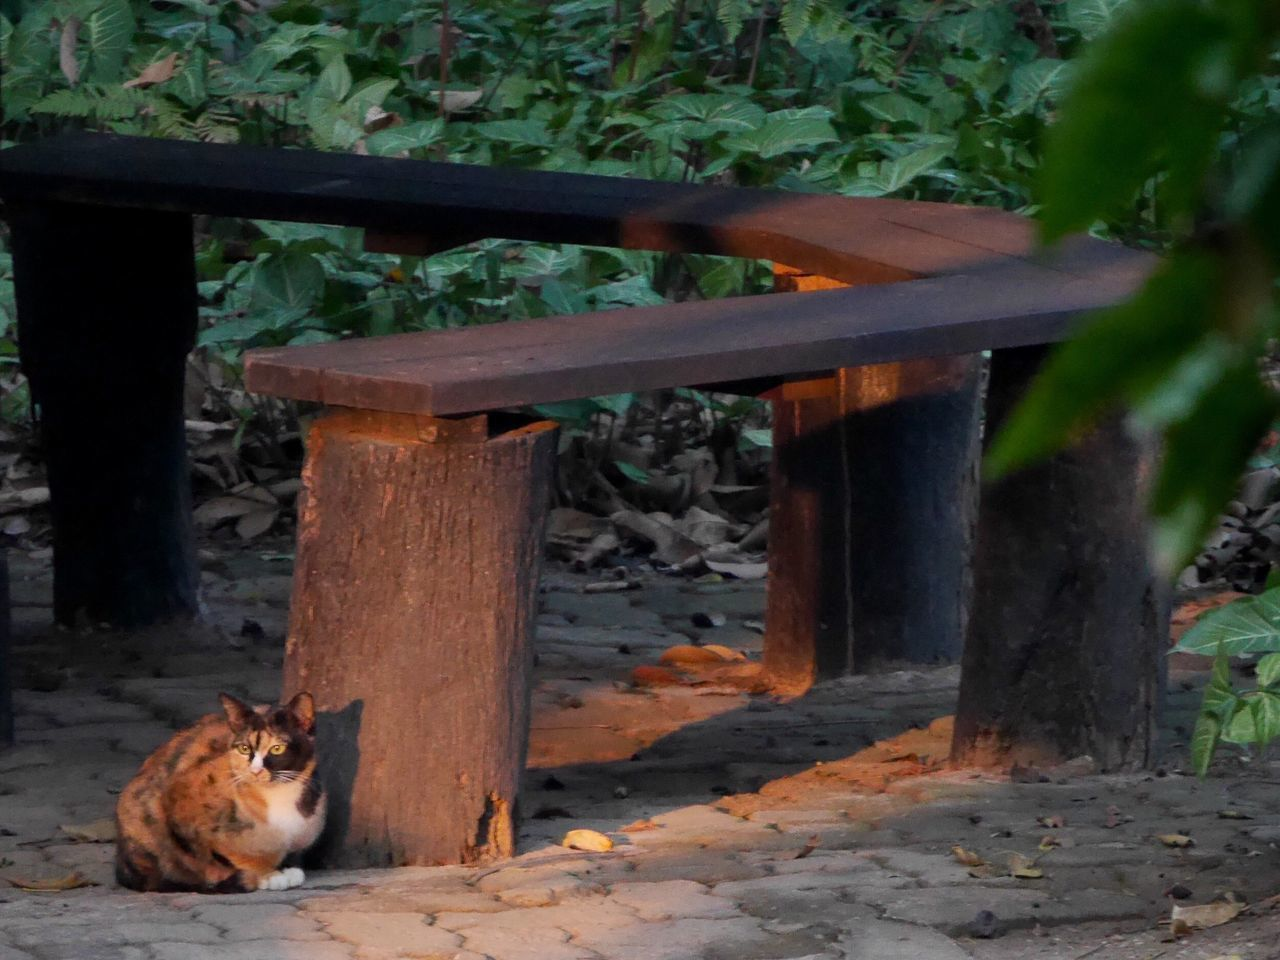 Cat Sitting By Wooden Bench